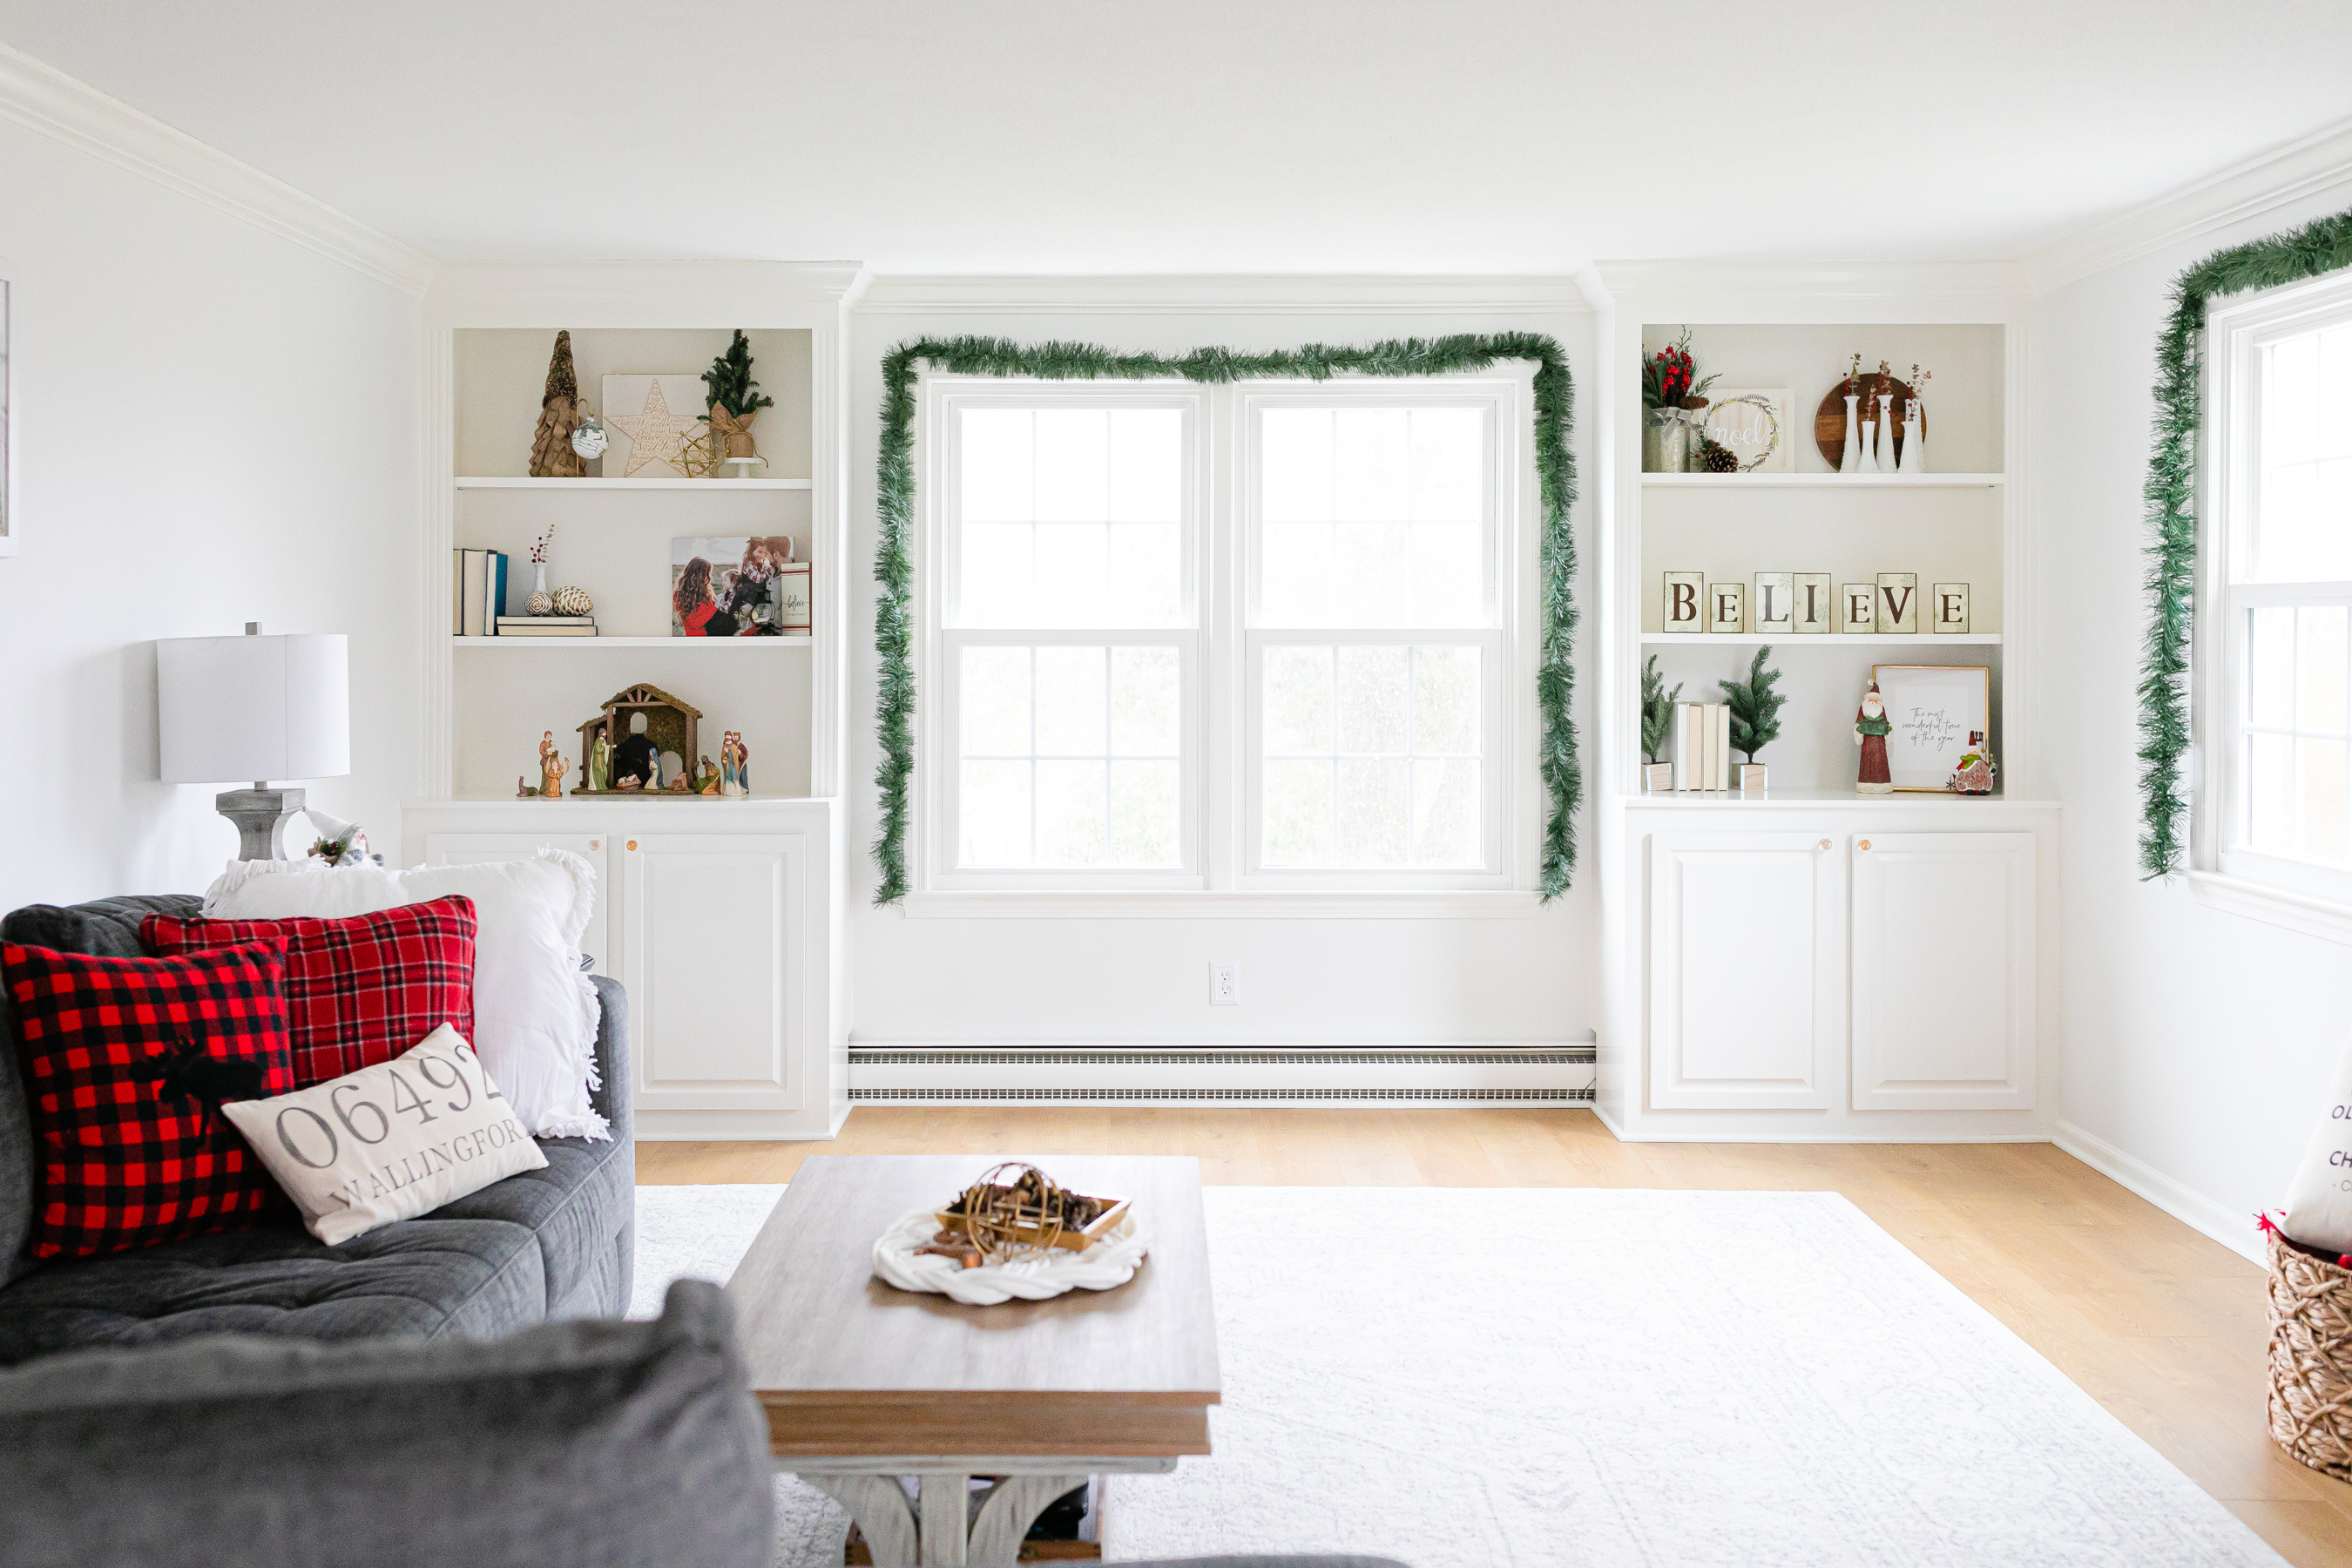 built in shelves decorated for Christmas